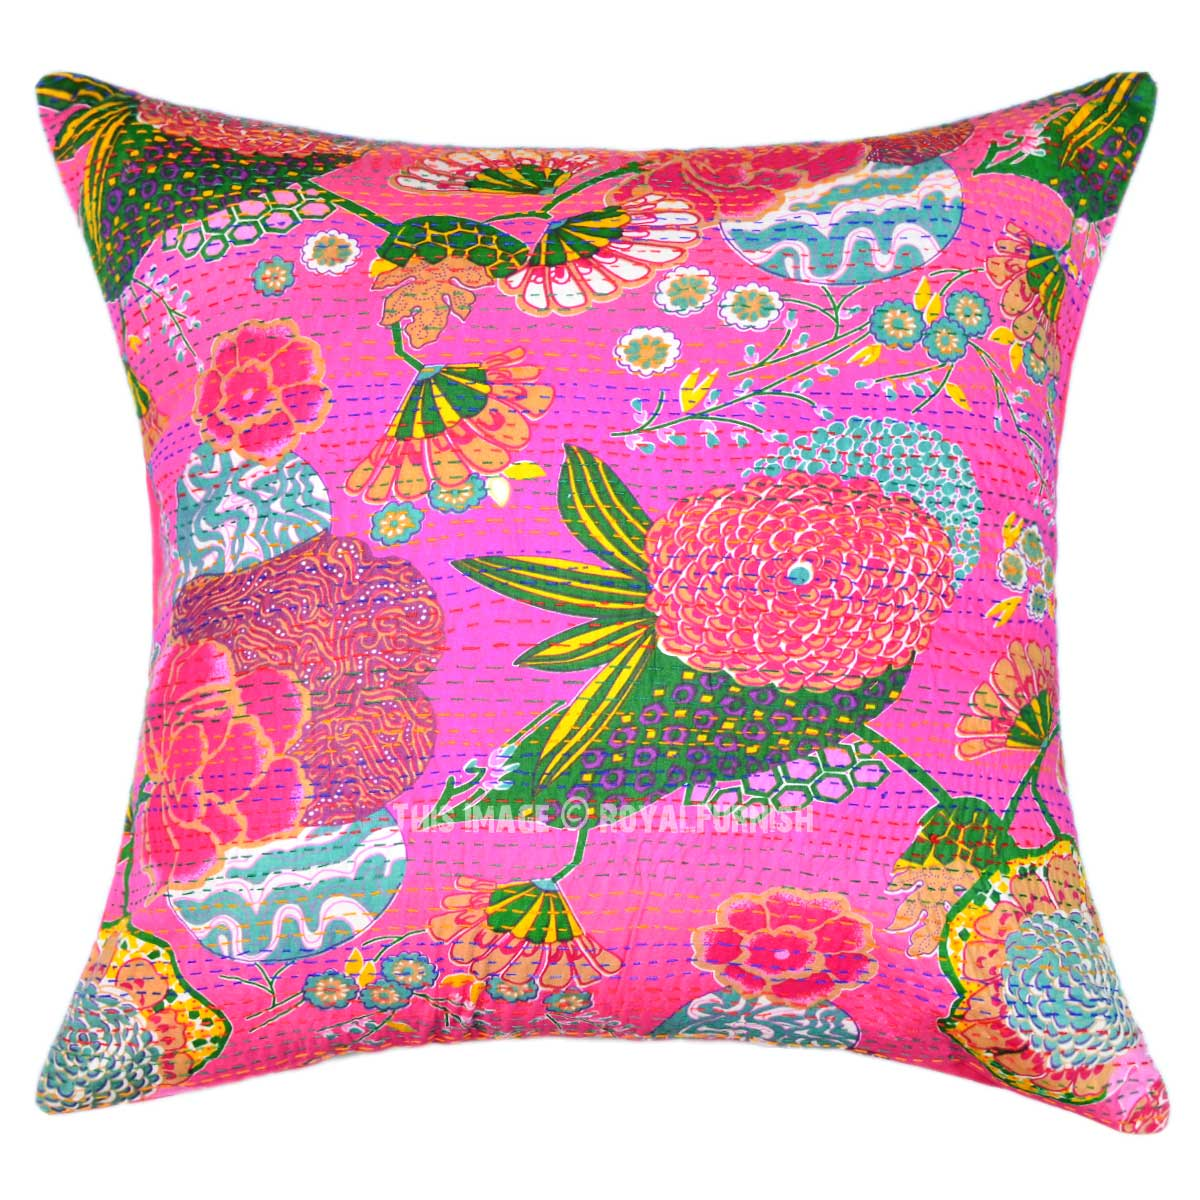 Oversized Decorative Pillow Covers : Oversize Decorative Square Kantha Throw Pillow Cover, Boho Accent 24X24 - RoyalFurnish.com